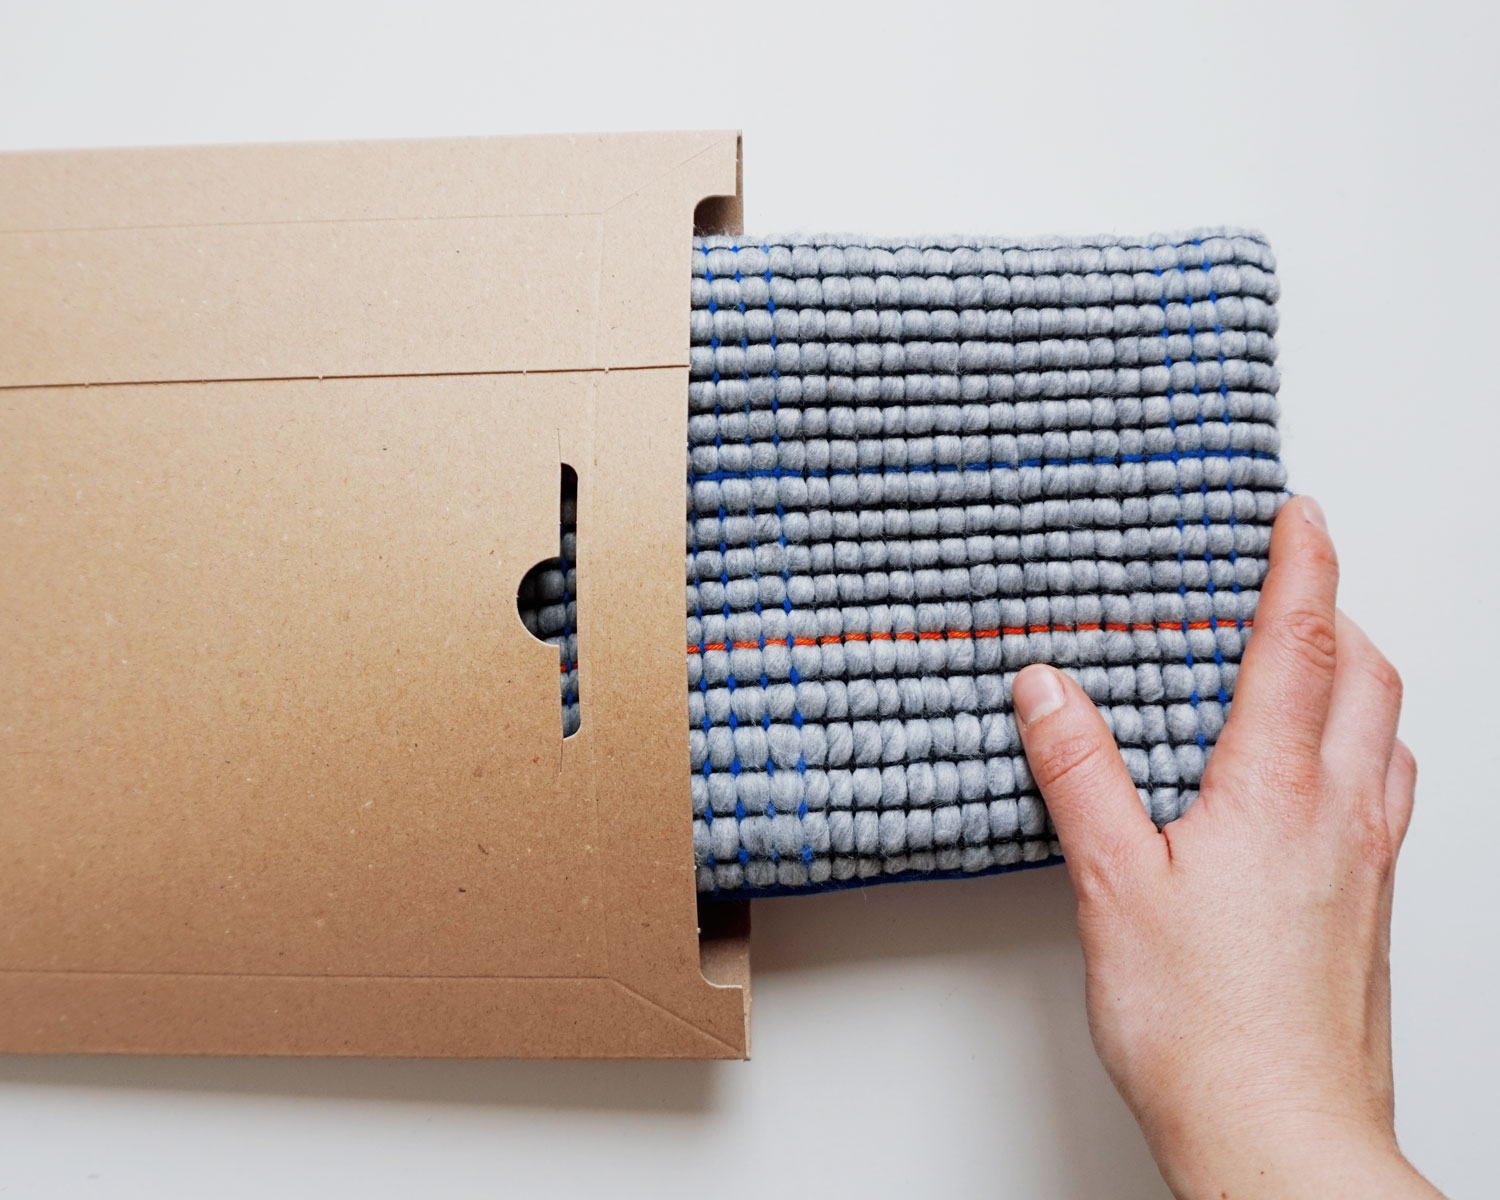 Image of a hand packing a pillow case into a cardboard envelope